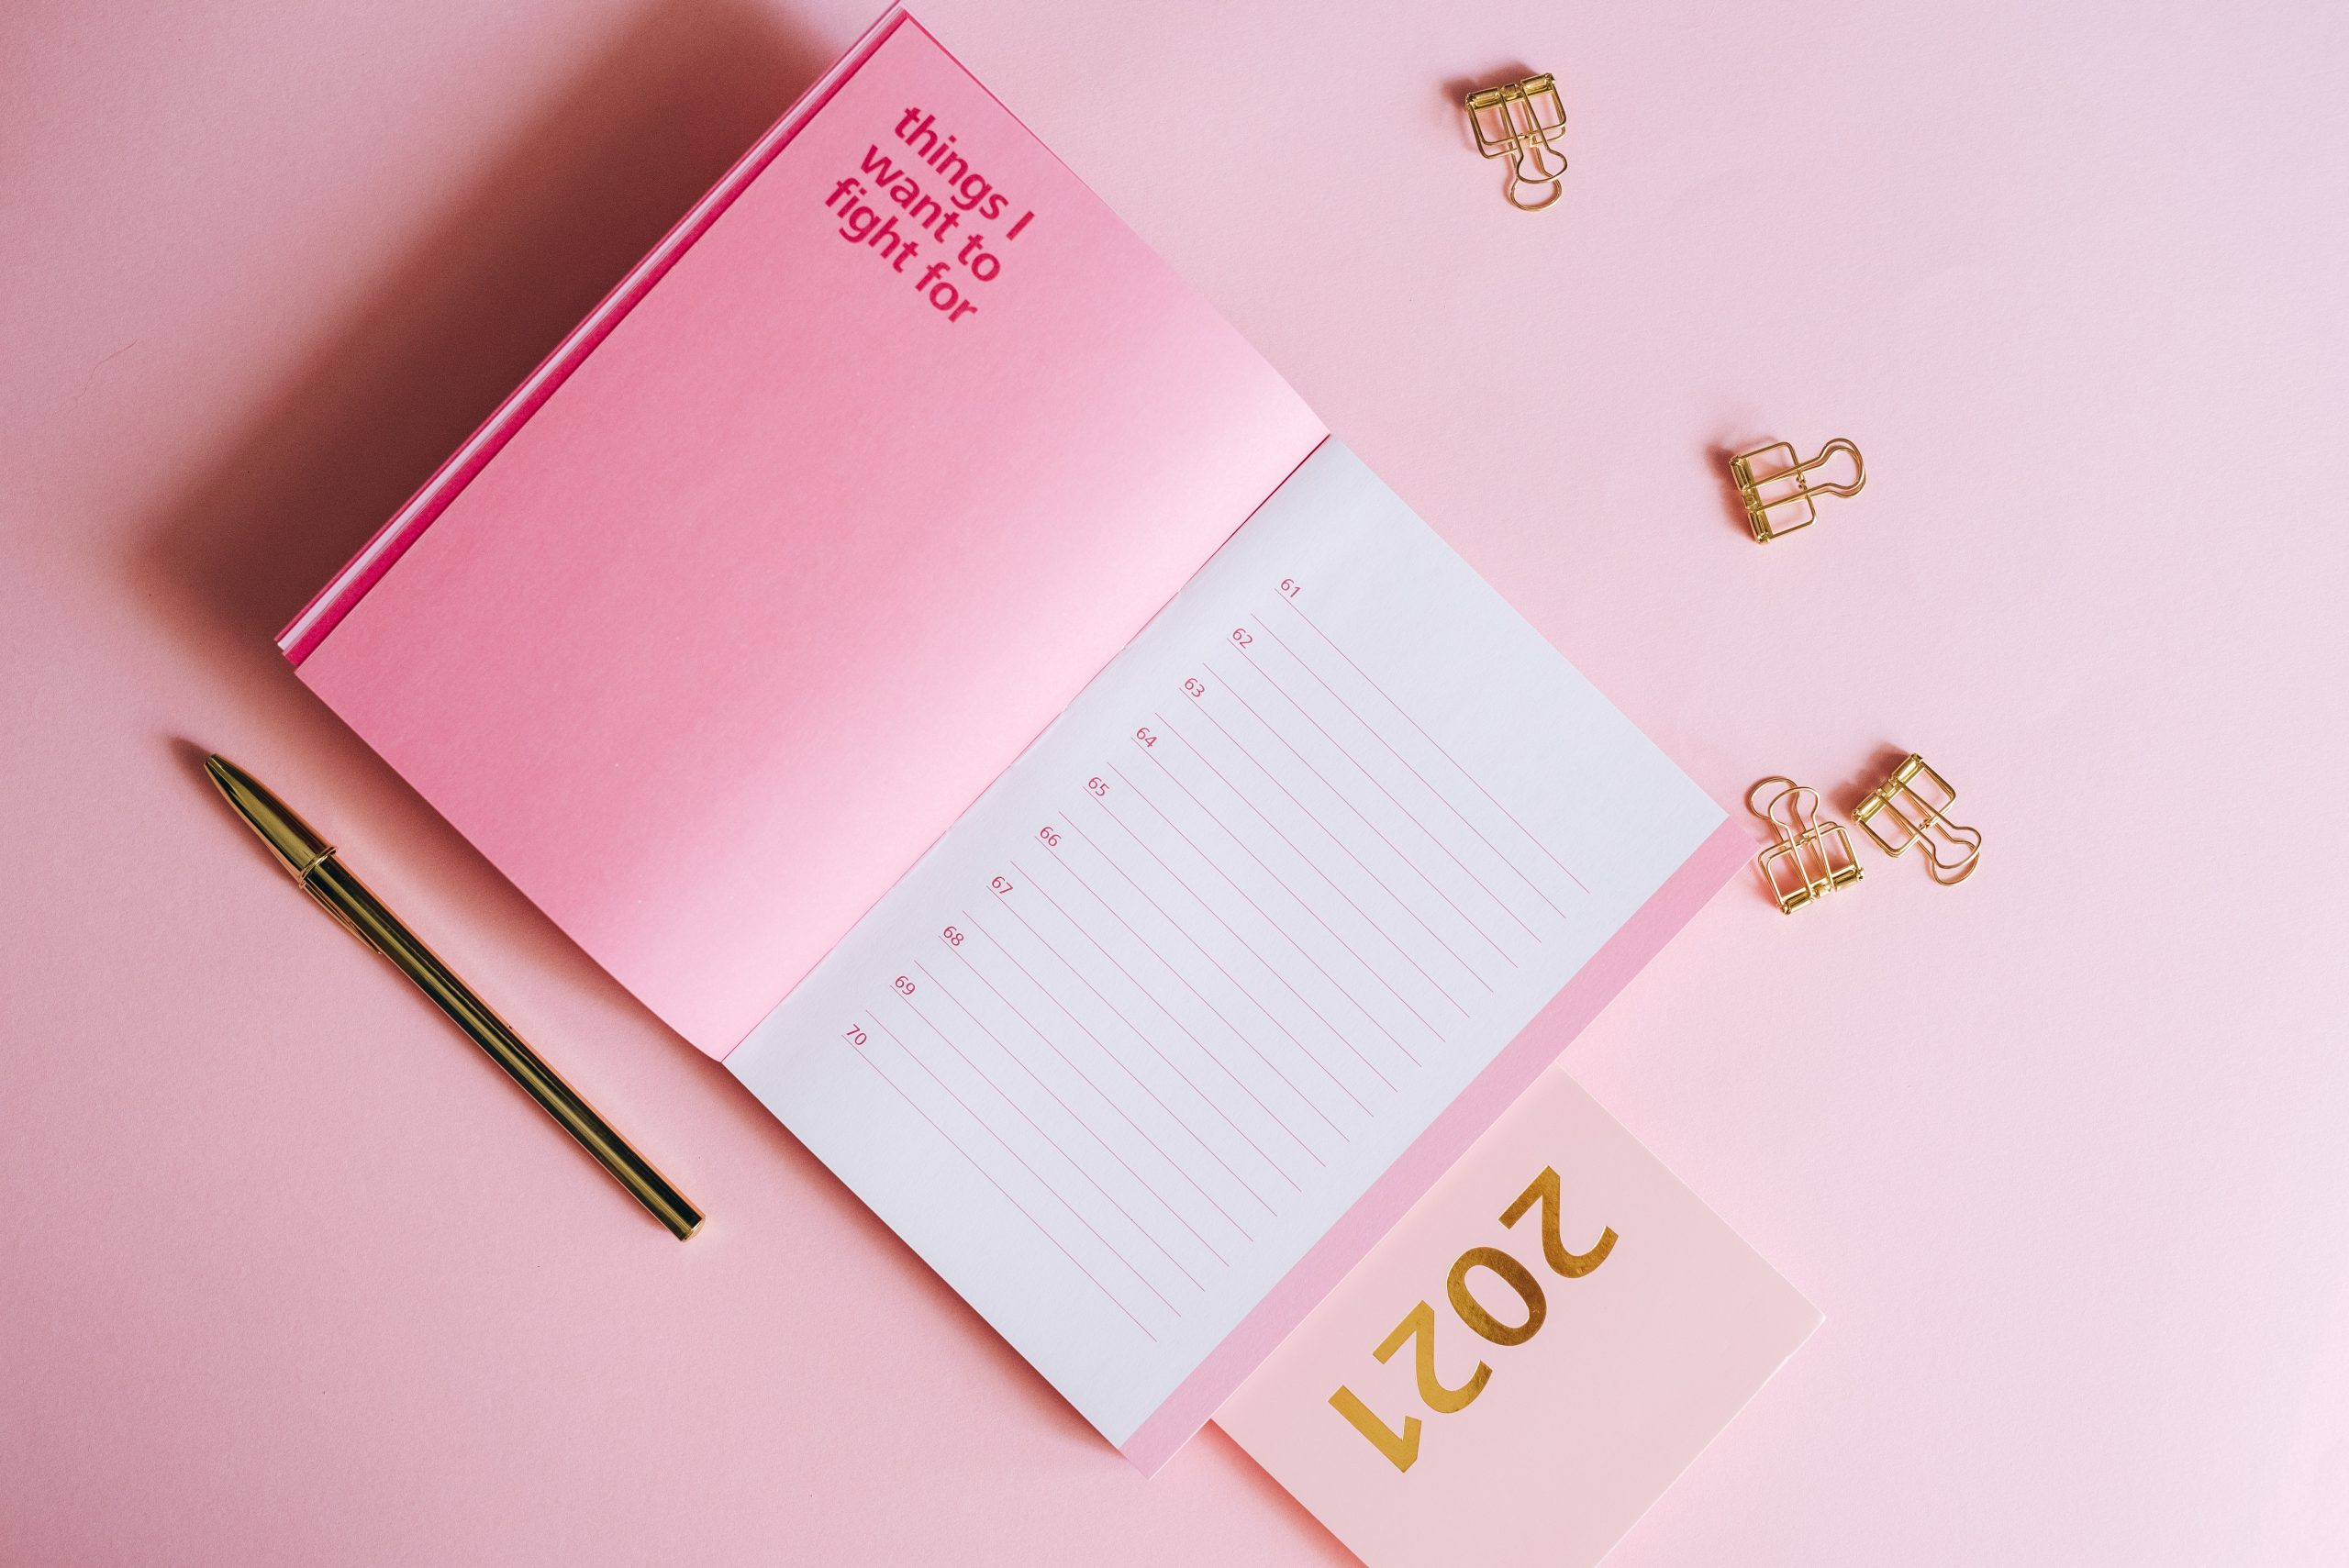 Ideas for Creative Resolutions This Year for Self-improvement - Gildshire